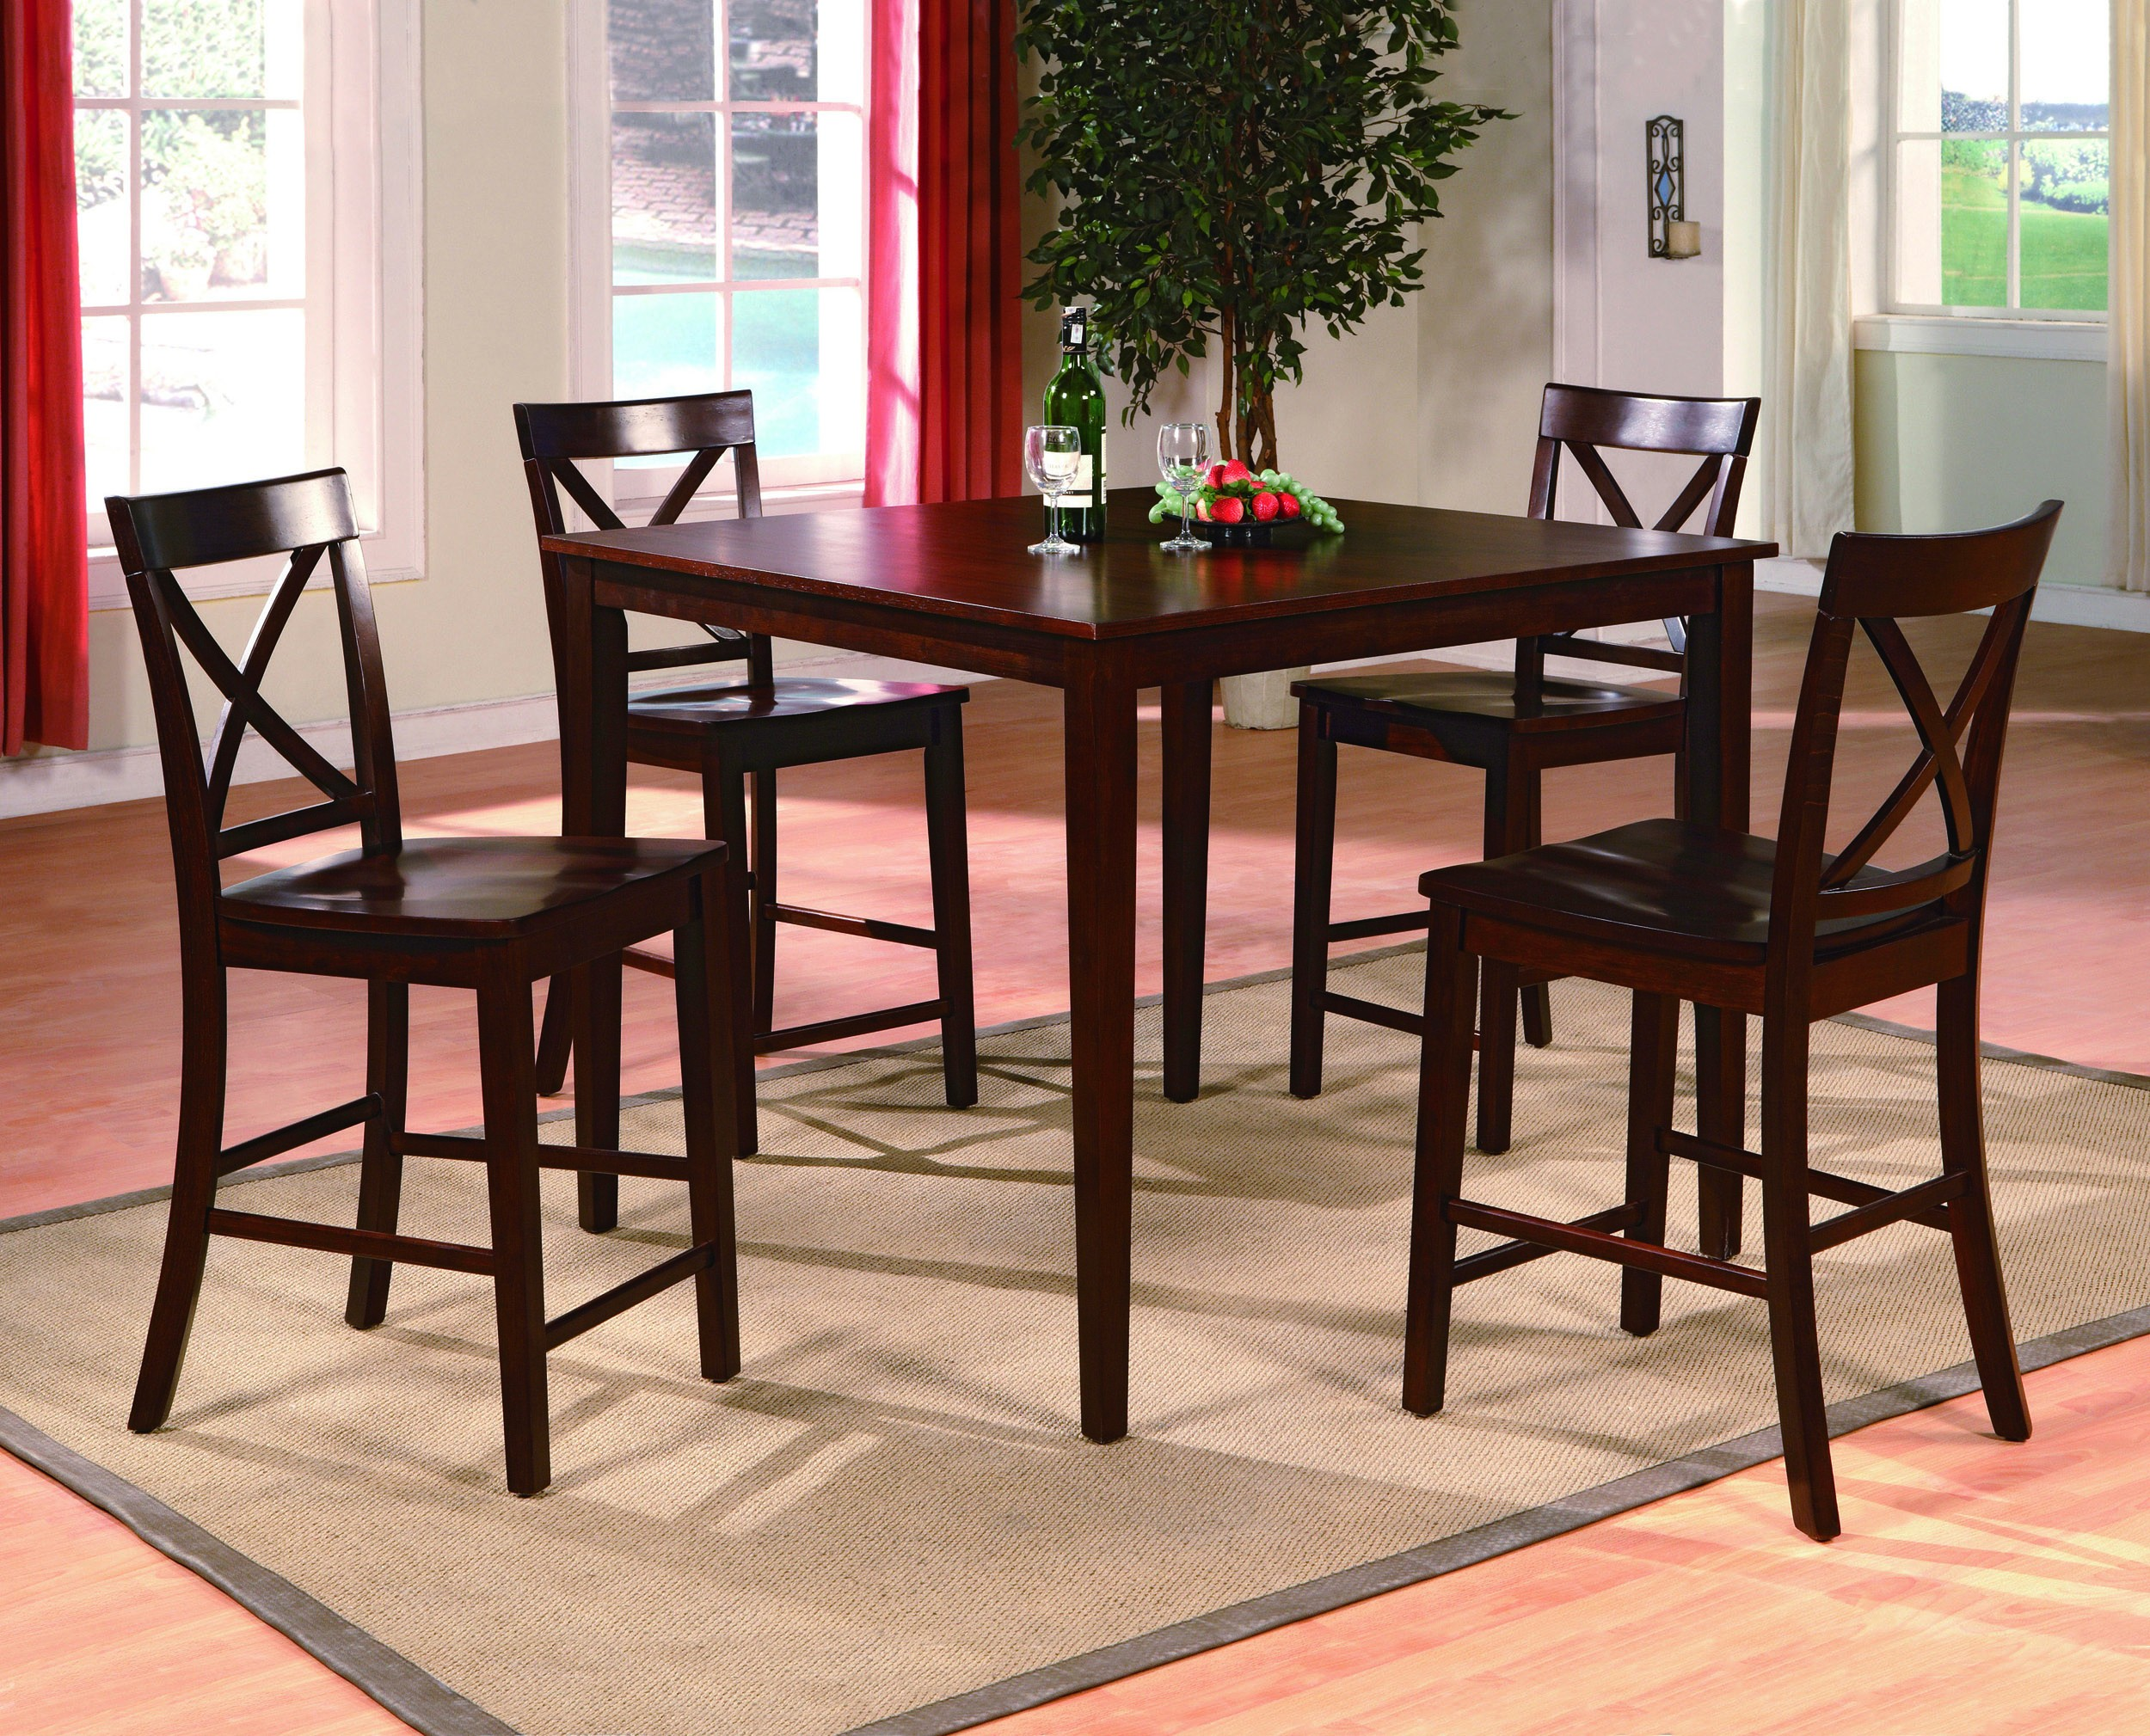 5pc Counter Height Table 4 Chairs Slat Seat Hot Sectionals